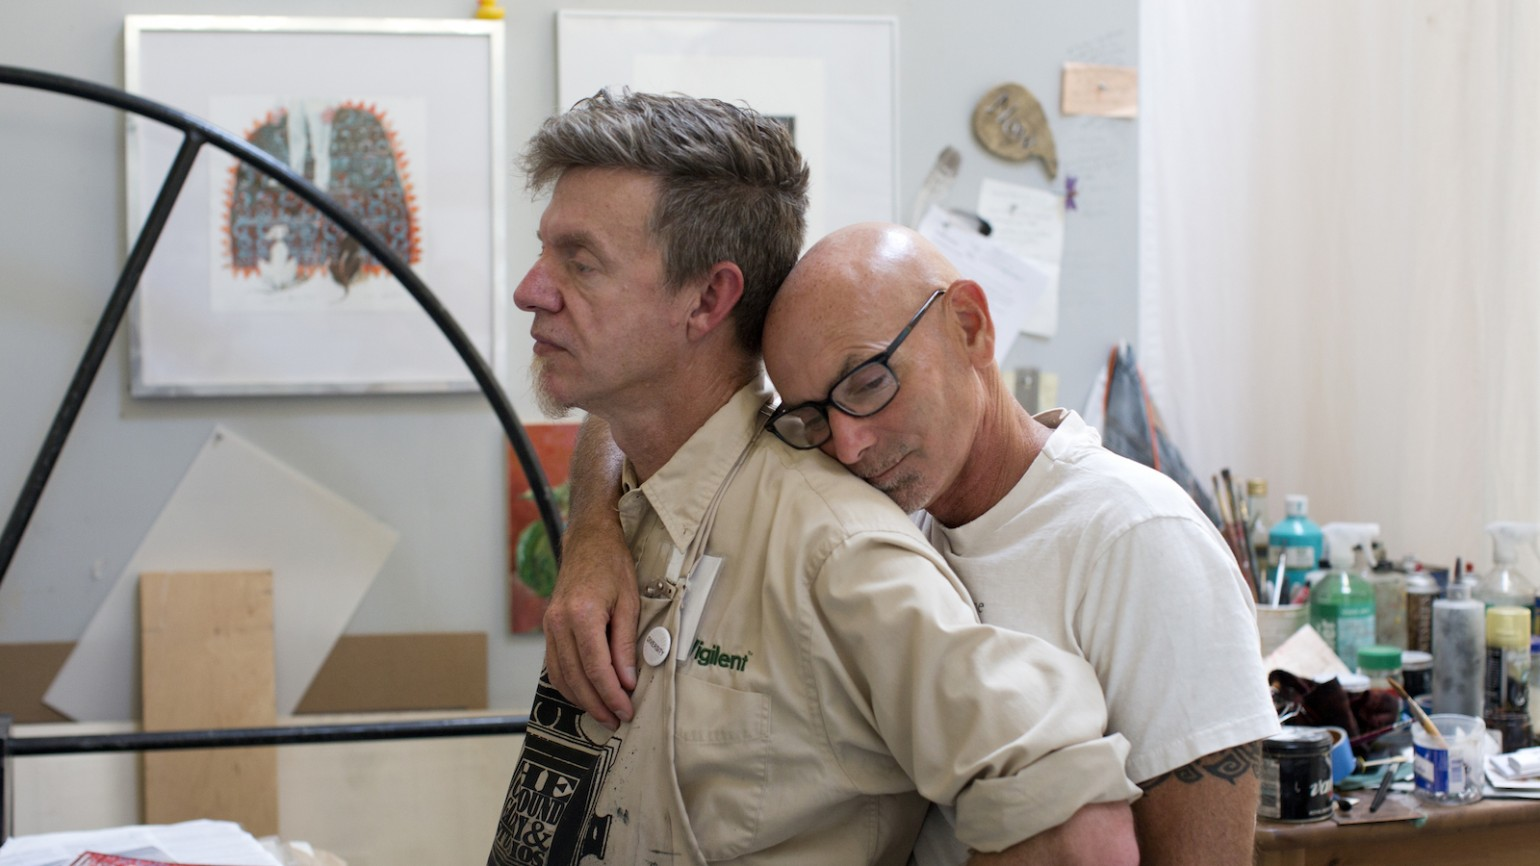 Ralph Thurlow kisses his husband, David Spiher, on the back during a visit to Spiher's artist studio in Oakland, Calif. on September 10, 2015. Both men are HIV-positive and Thurlow has AIDS-related dementia. (Photo by Erin Brethauer)